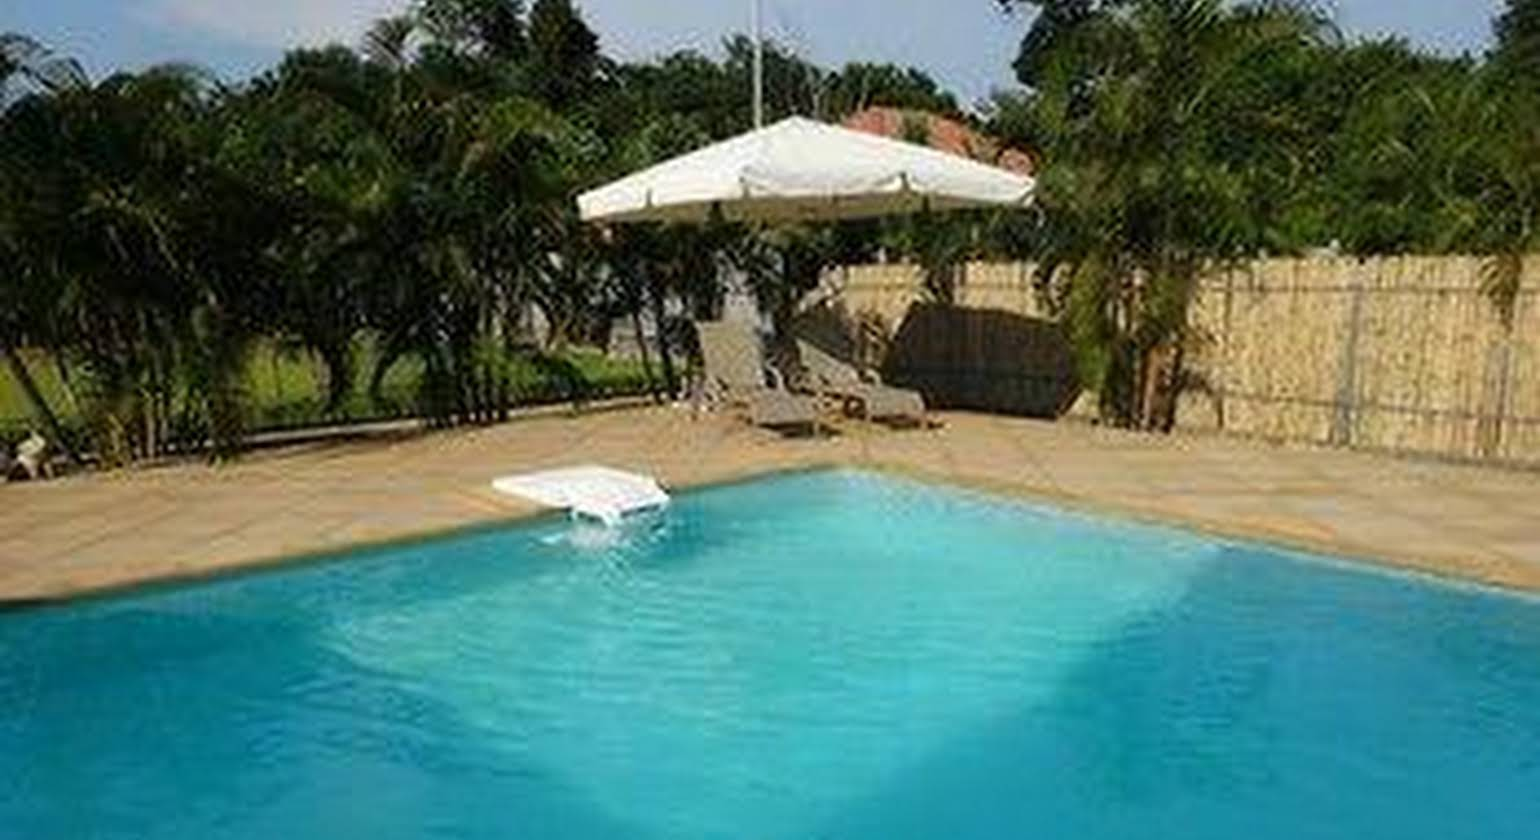 The Relaxing Pool Villa